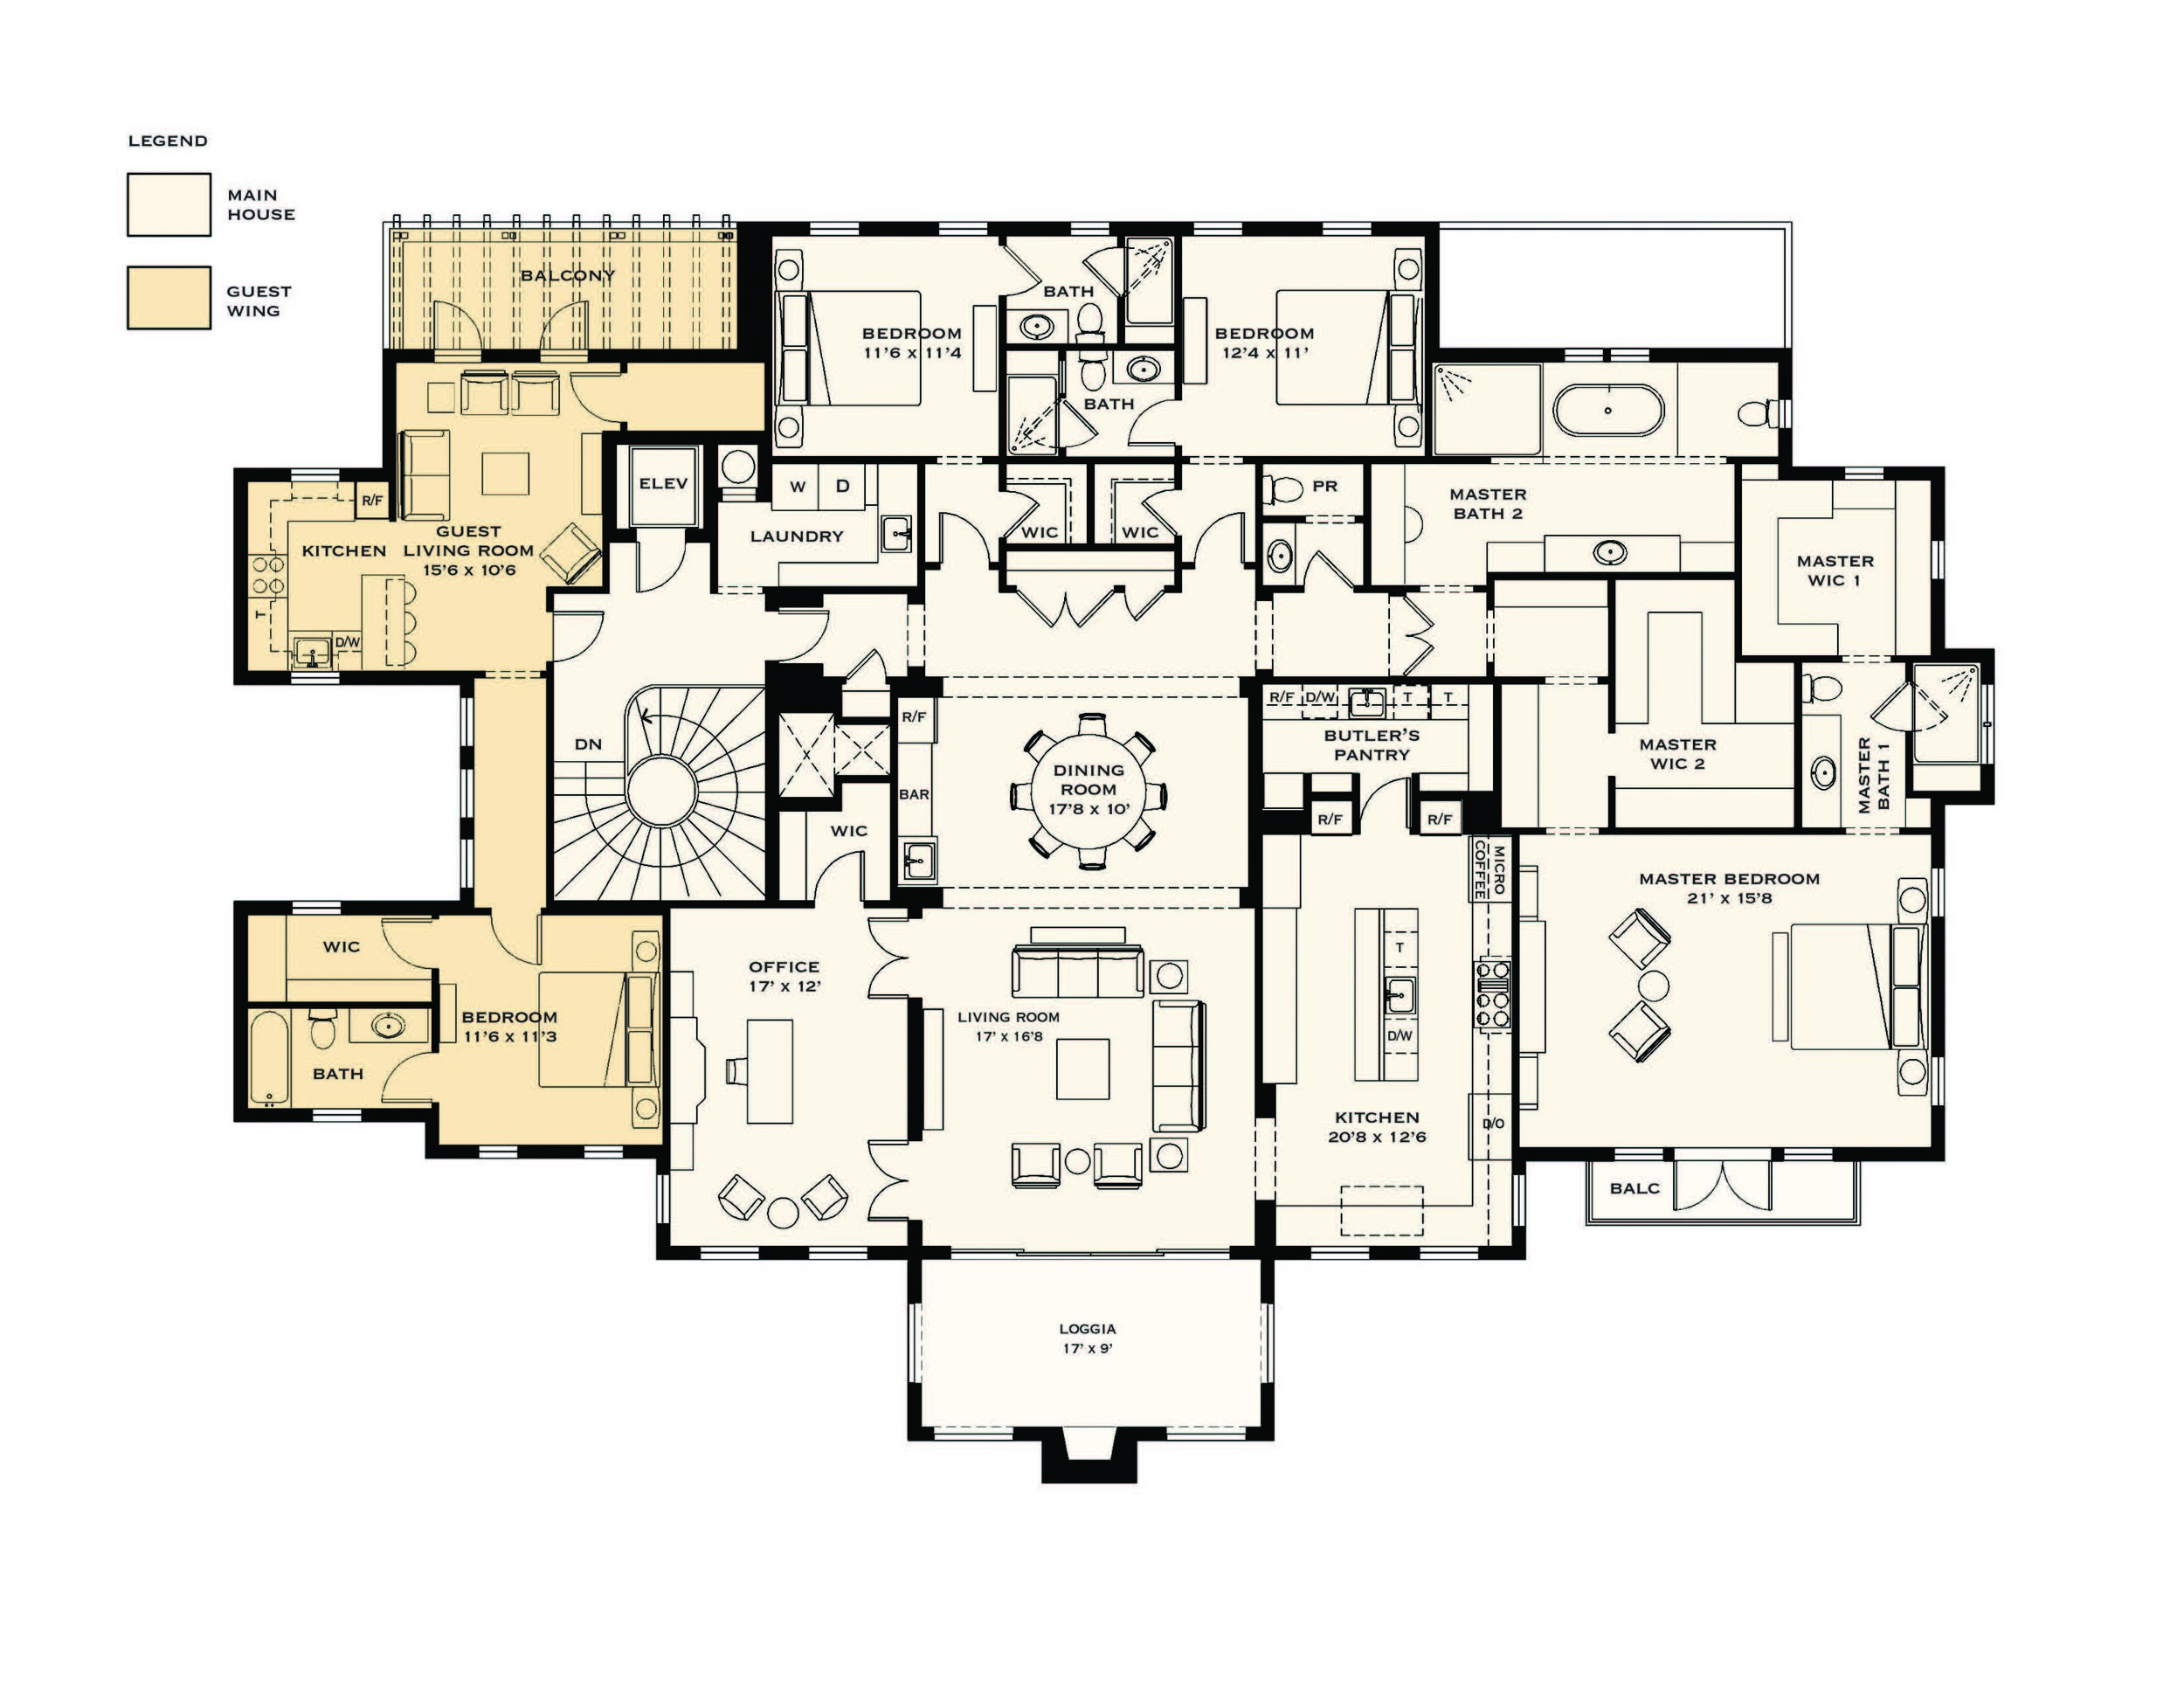 Residence 5 Floor Plan 2nd Floor.jpg